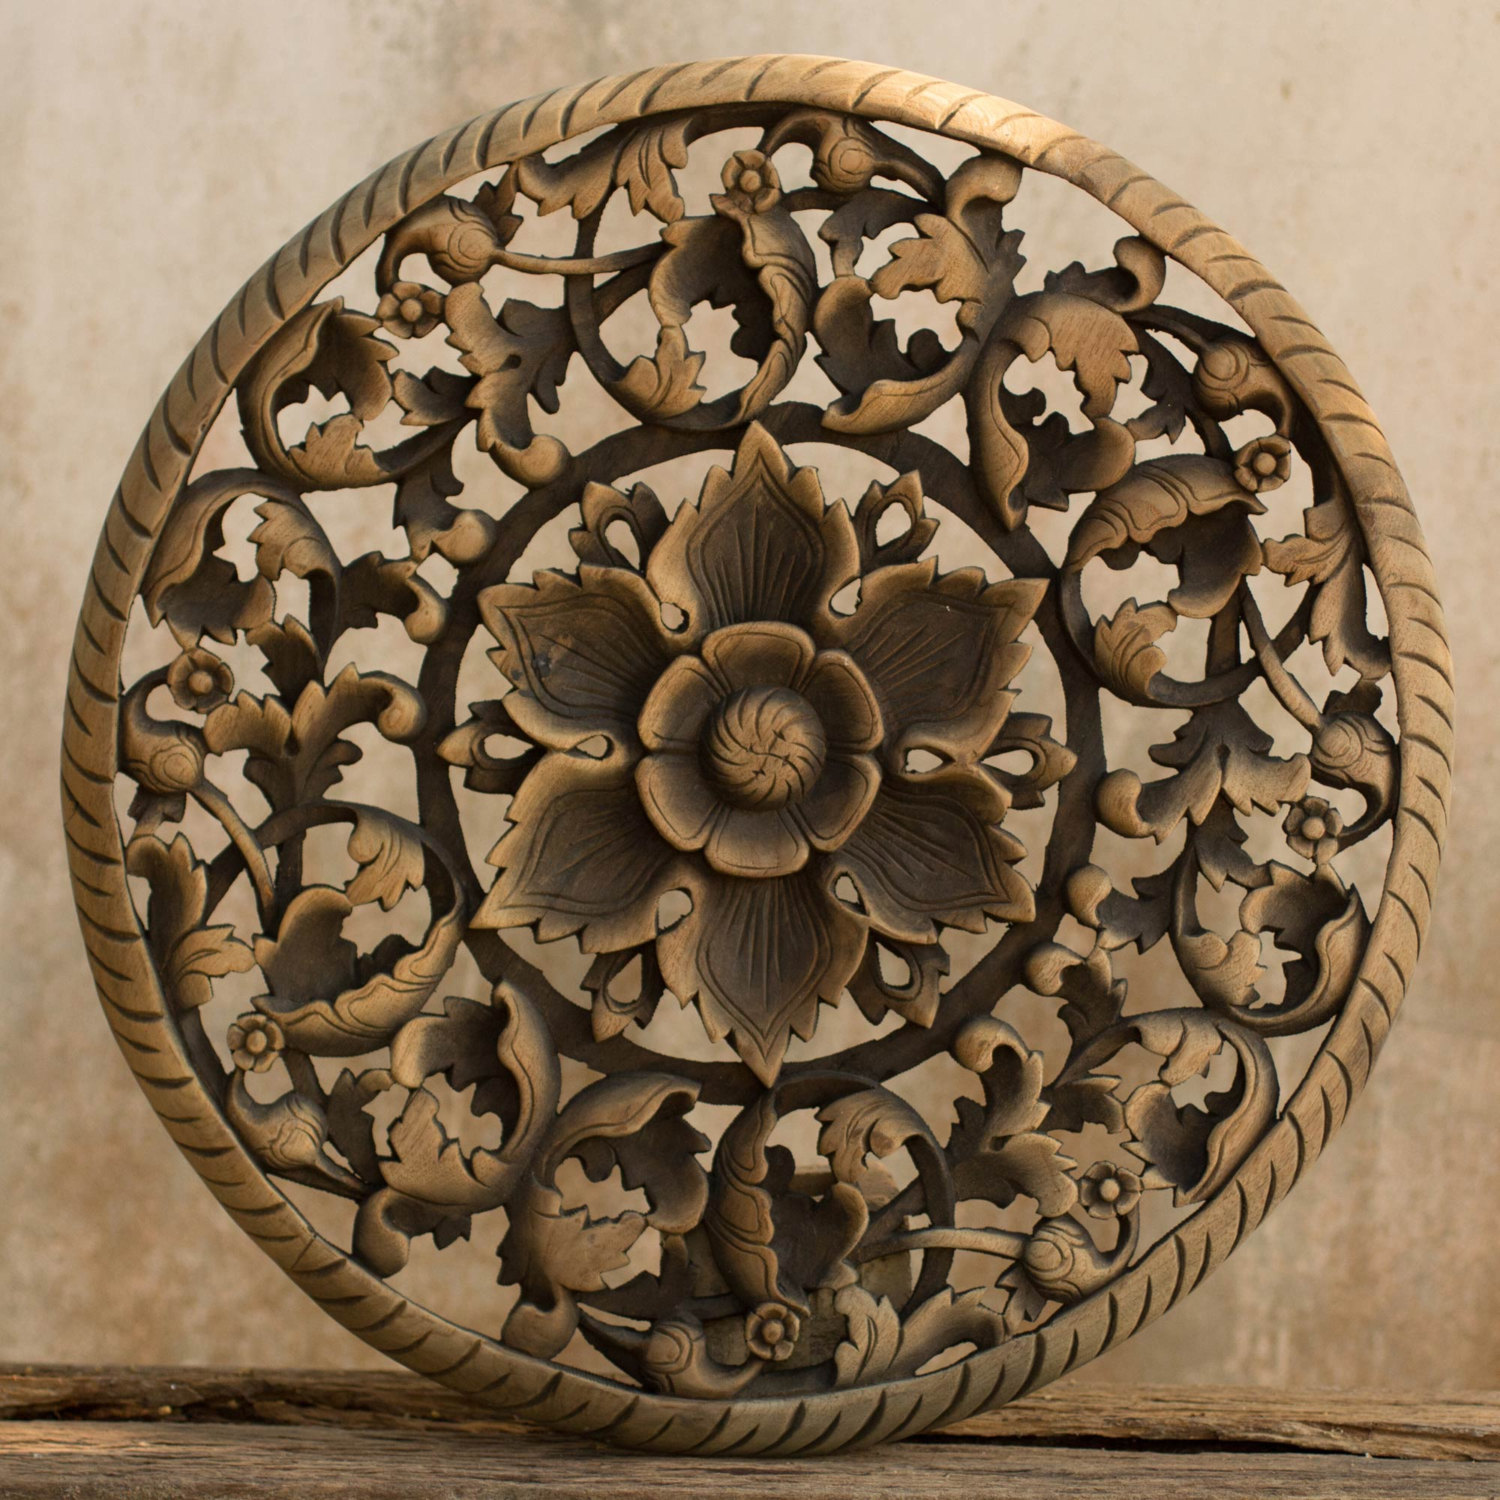 New Tree Dimensional Floral Wooden Wall Hanging - Siam Sawadee carved wood wall art panels